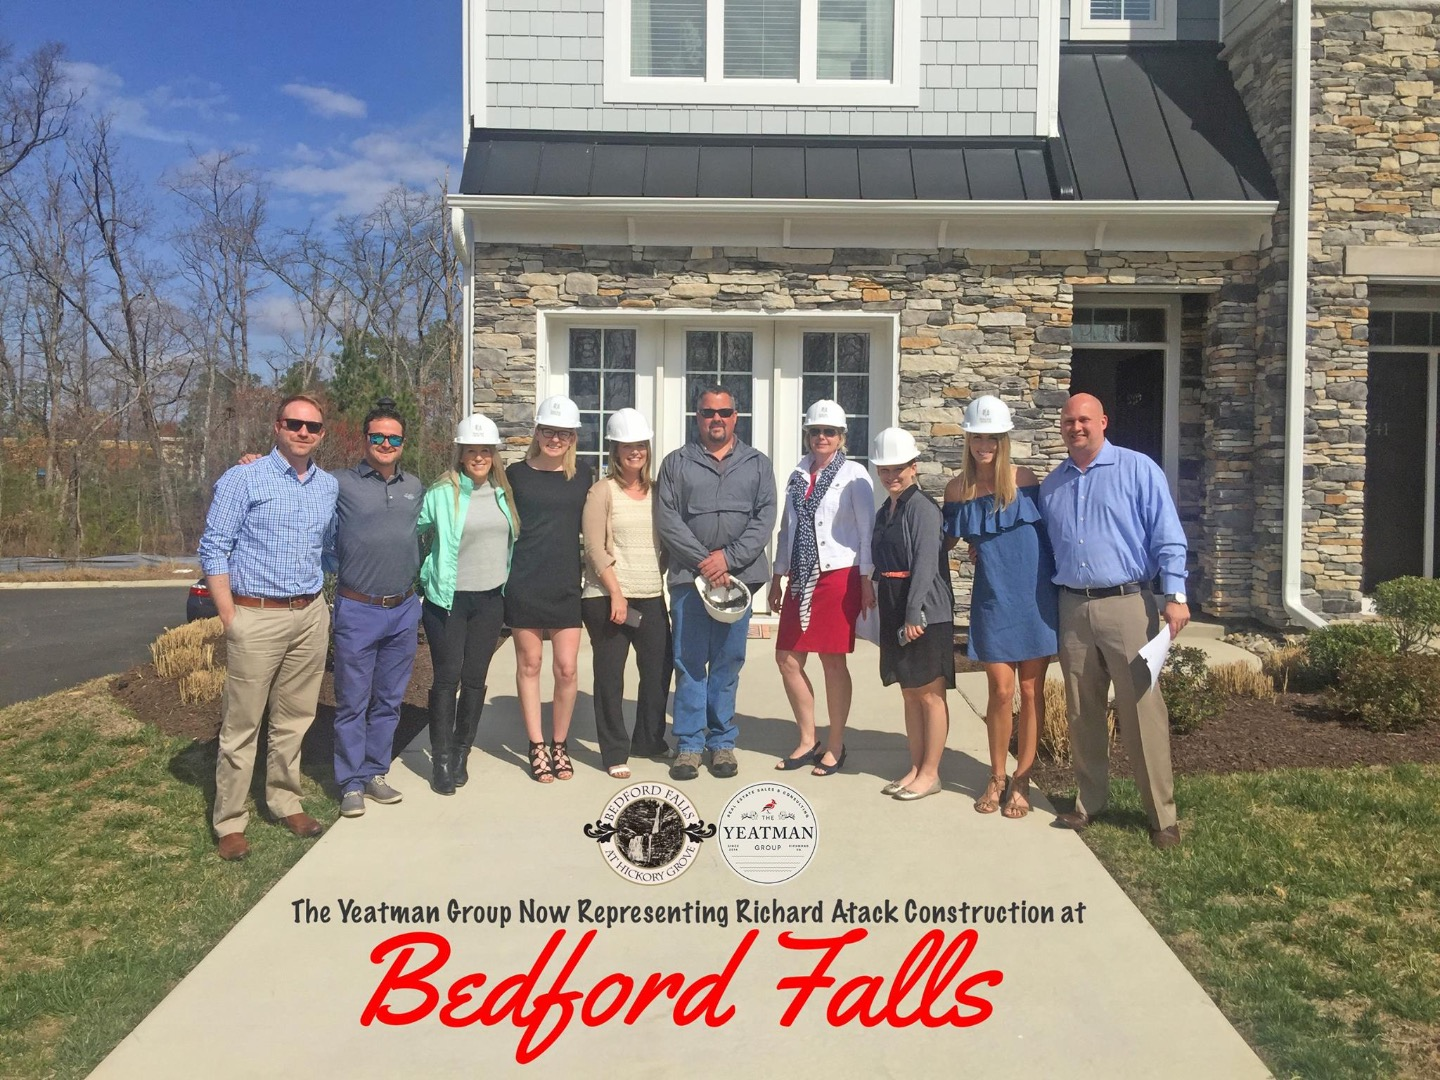 THE YEATMAN GROUP NOW REPRESENTING RICHARD ATACK CONSTRUCTION AT BEDFORD FALLS